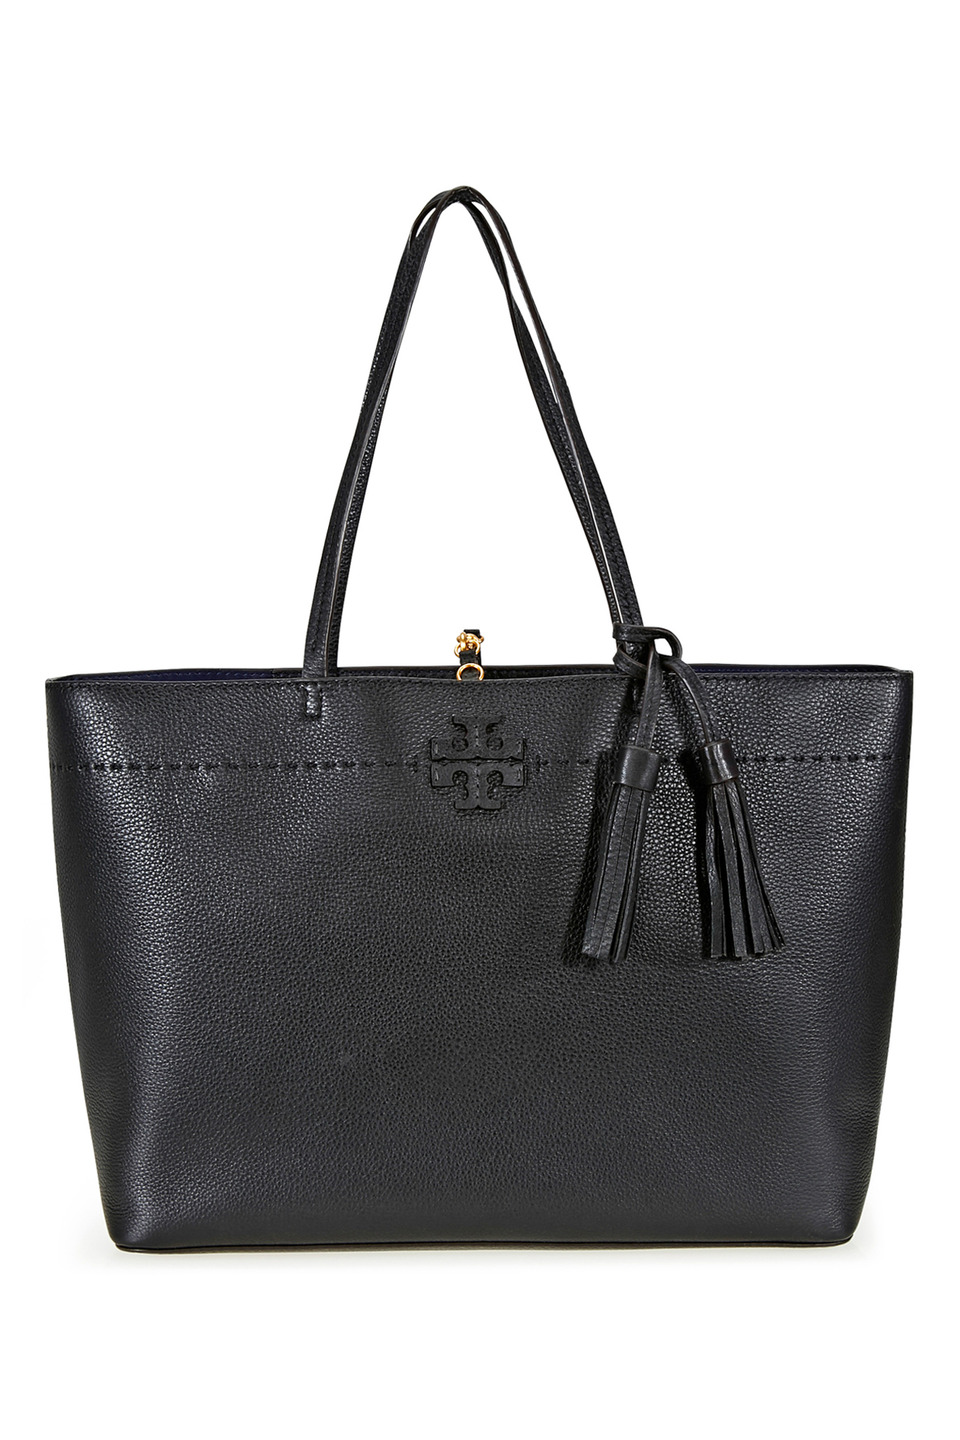 Mcgraw Tote in Black and Royal Navy